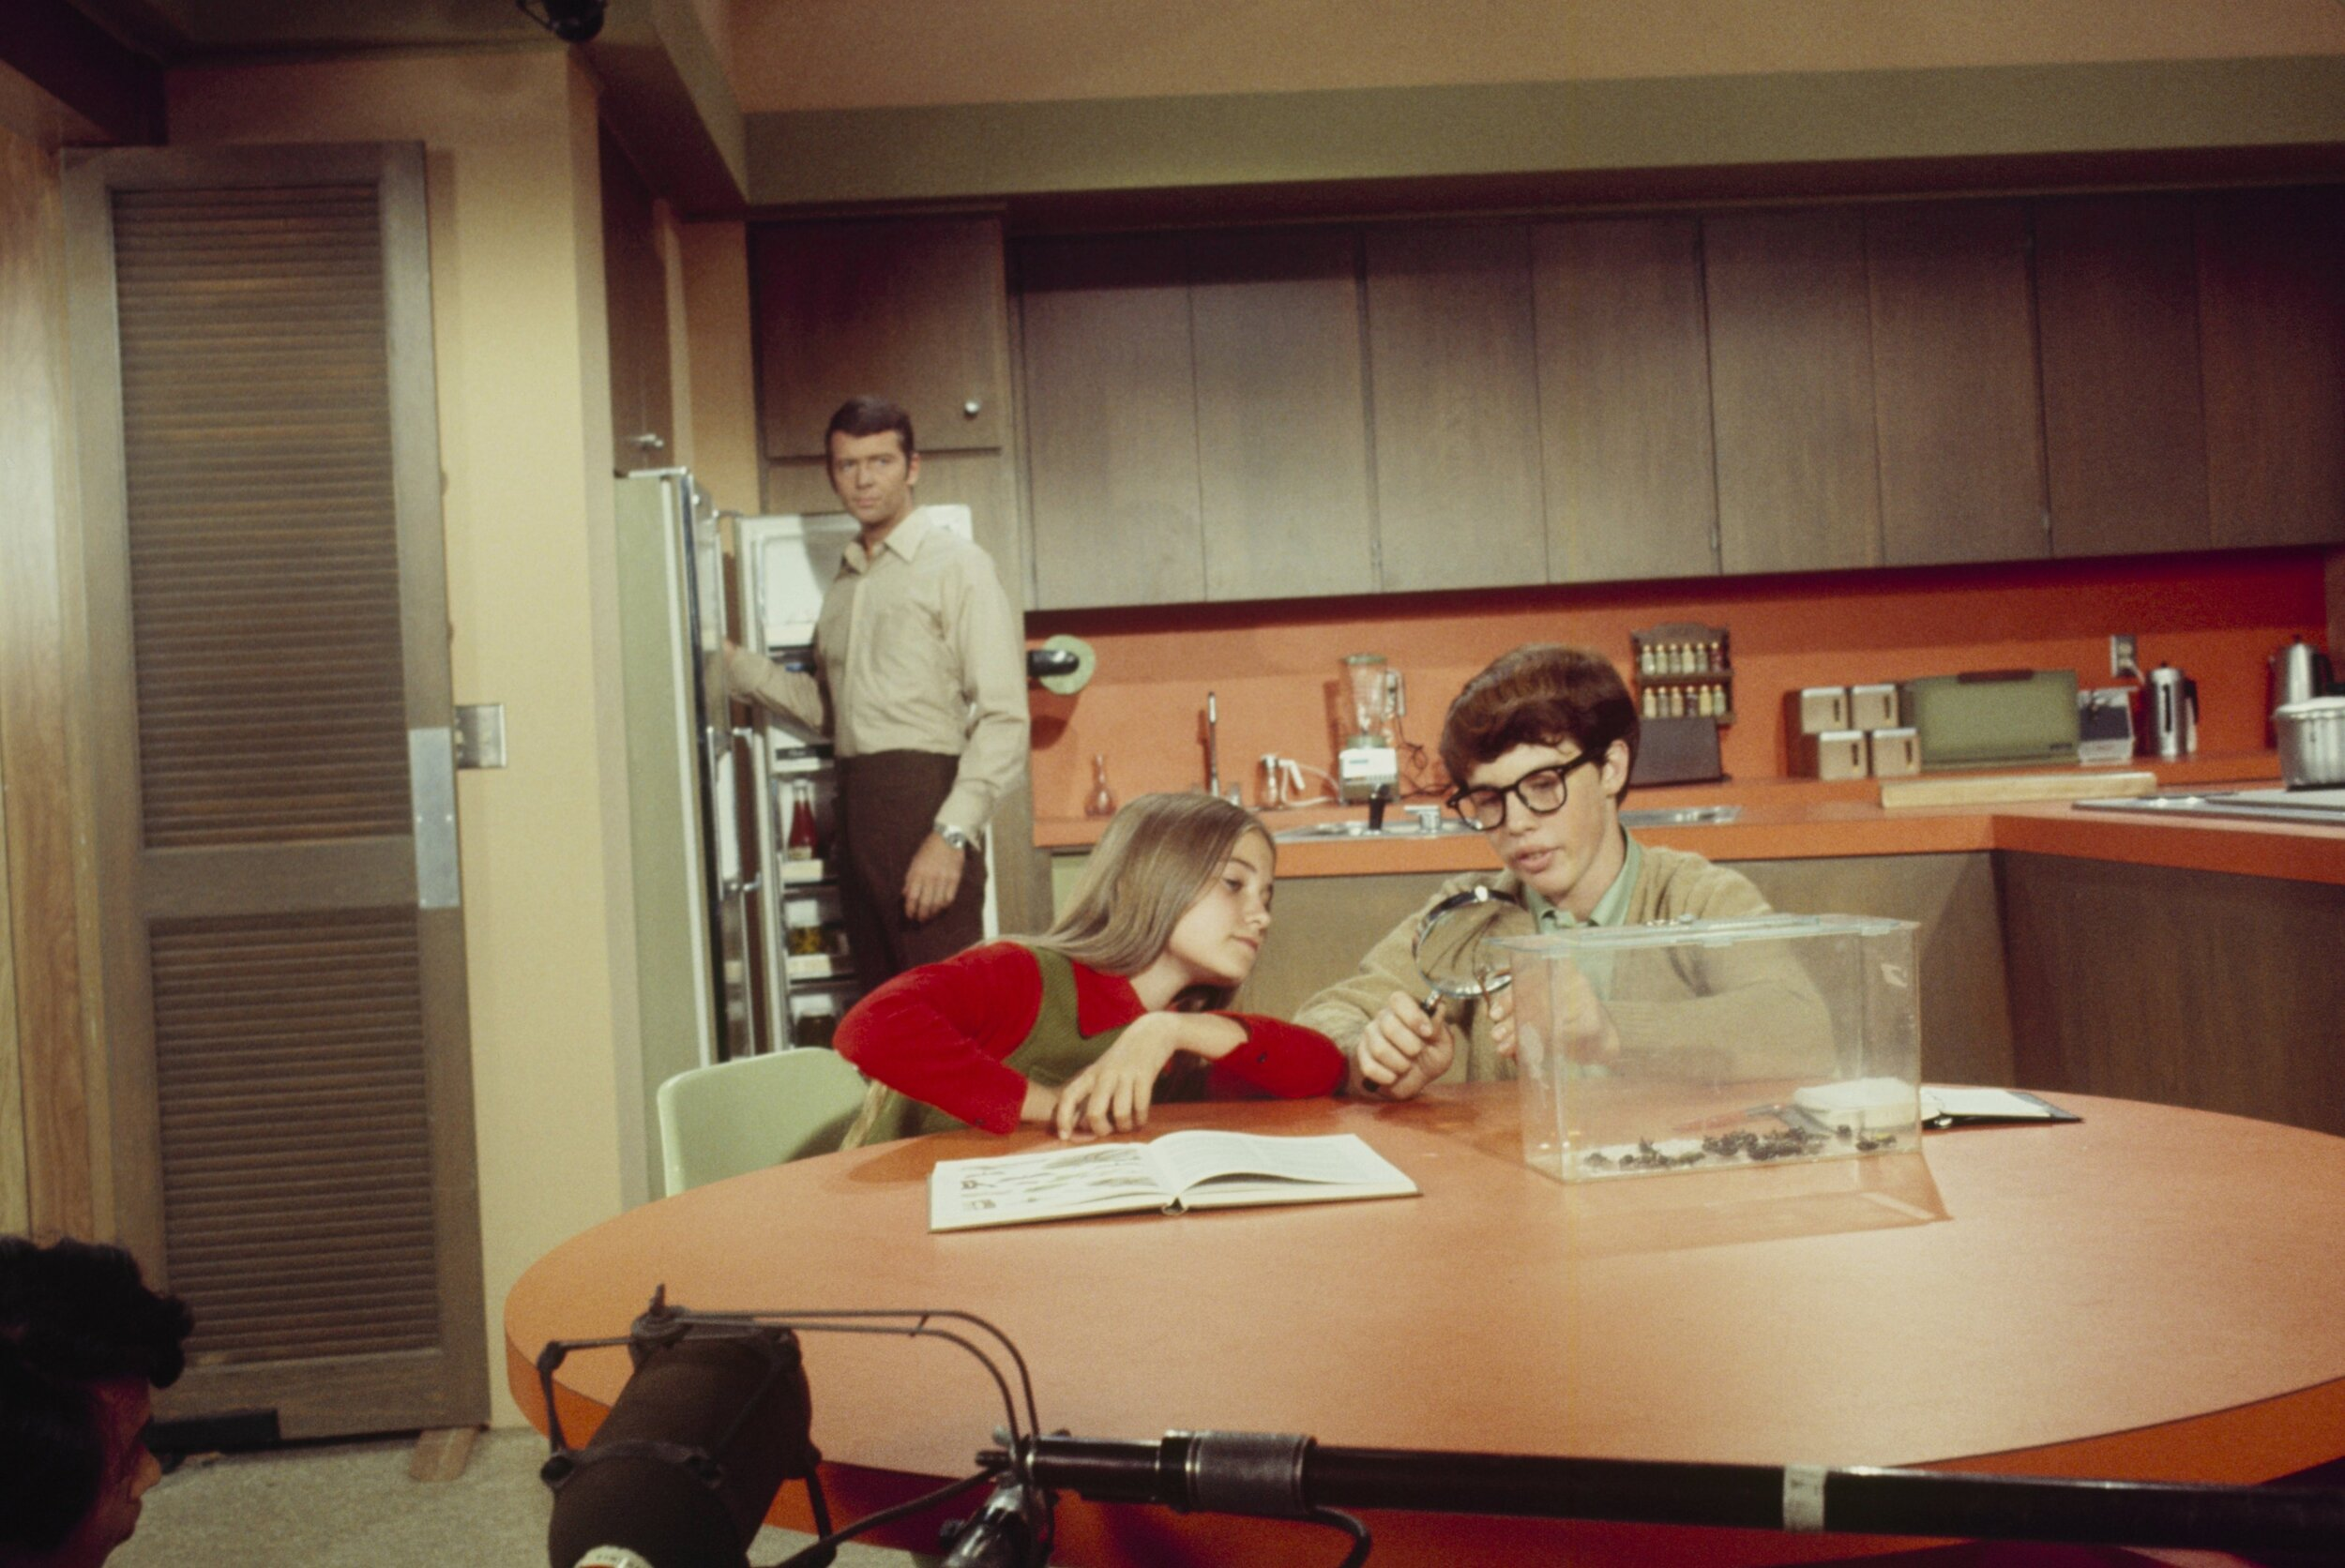 """Figure 2. The Brady family (Robert Reed, Maureen McCormick, Rory Stevens) in their kitchen. """"Going Going Steady,""""  The Brady Bunch , season 2, episode 5, ABC Television, Oct. 23, 1970. Photograph by Walt Disney Television via Getty Images Photo Archives."""